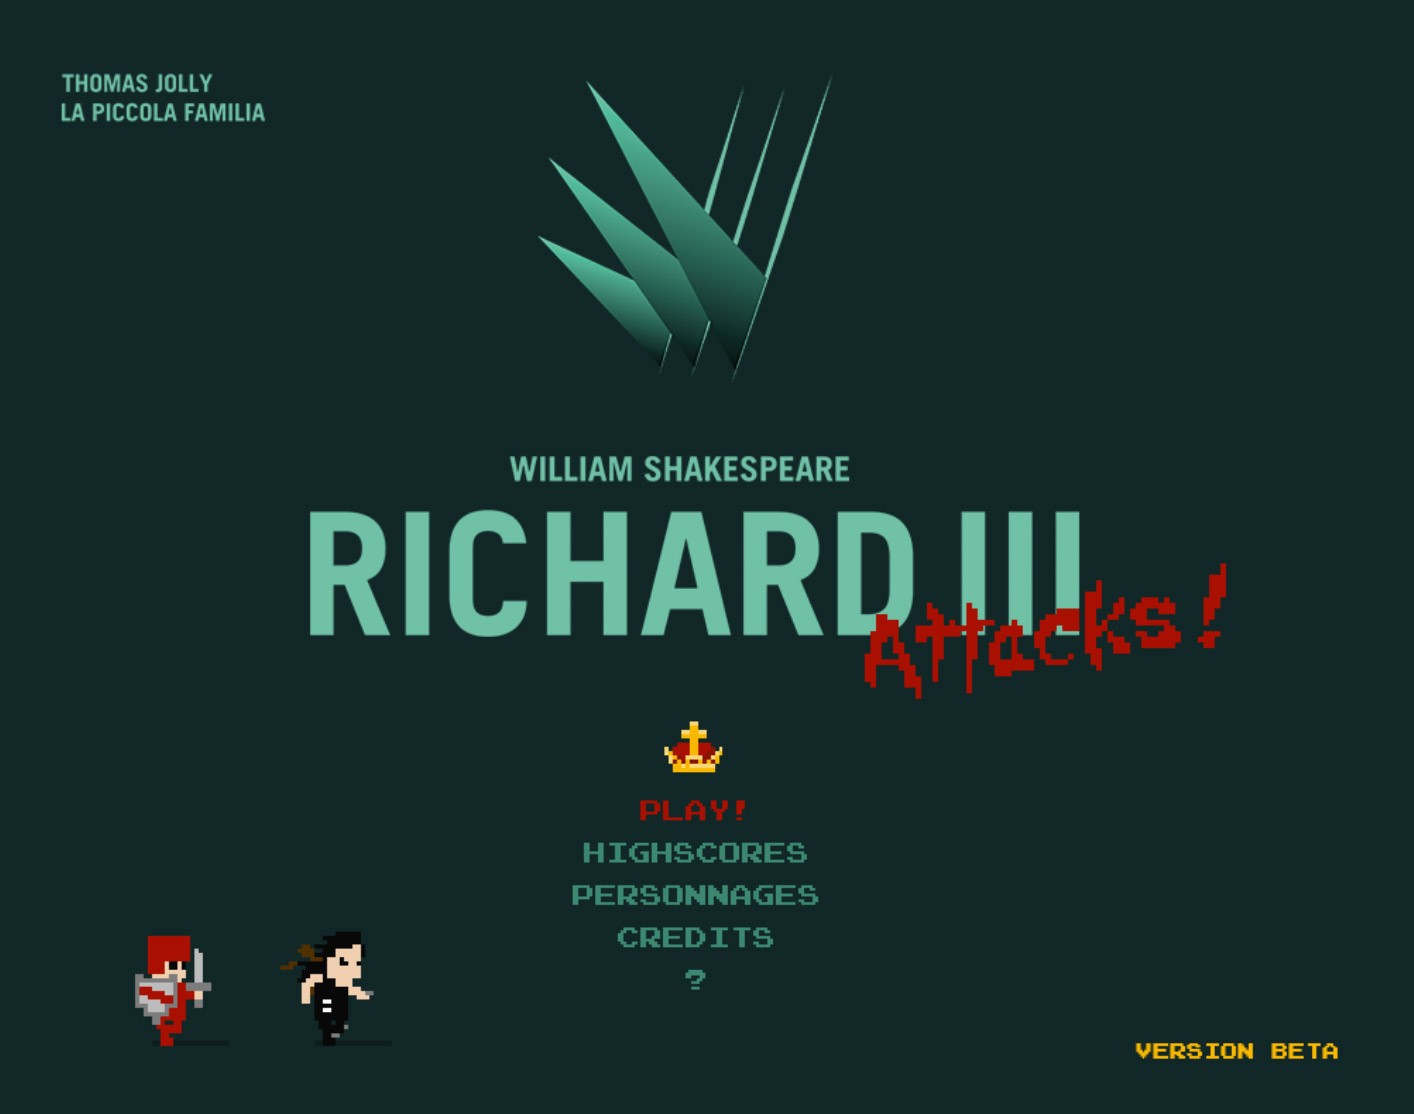 Richard III Attacks! Shakespeare en jeu video.